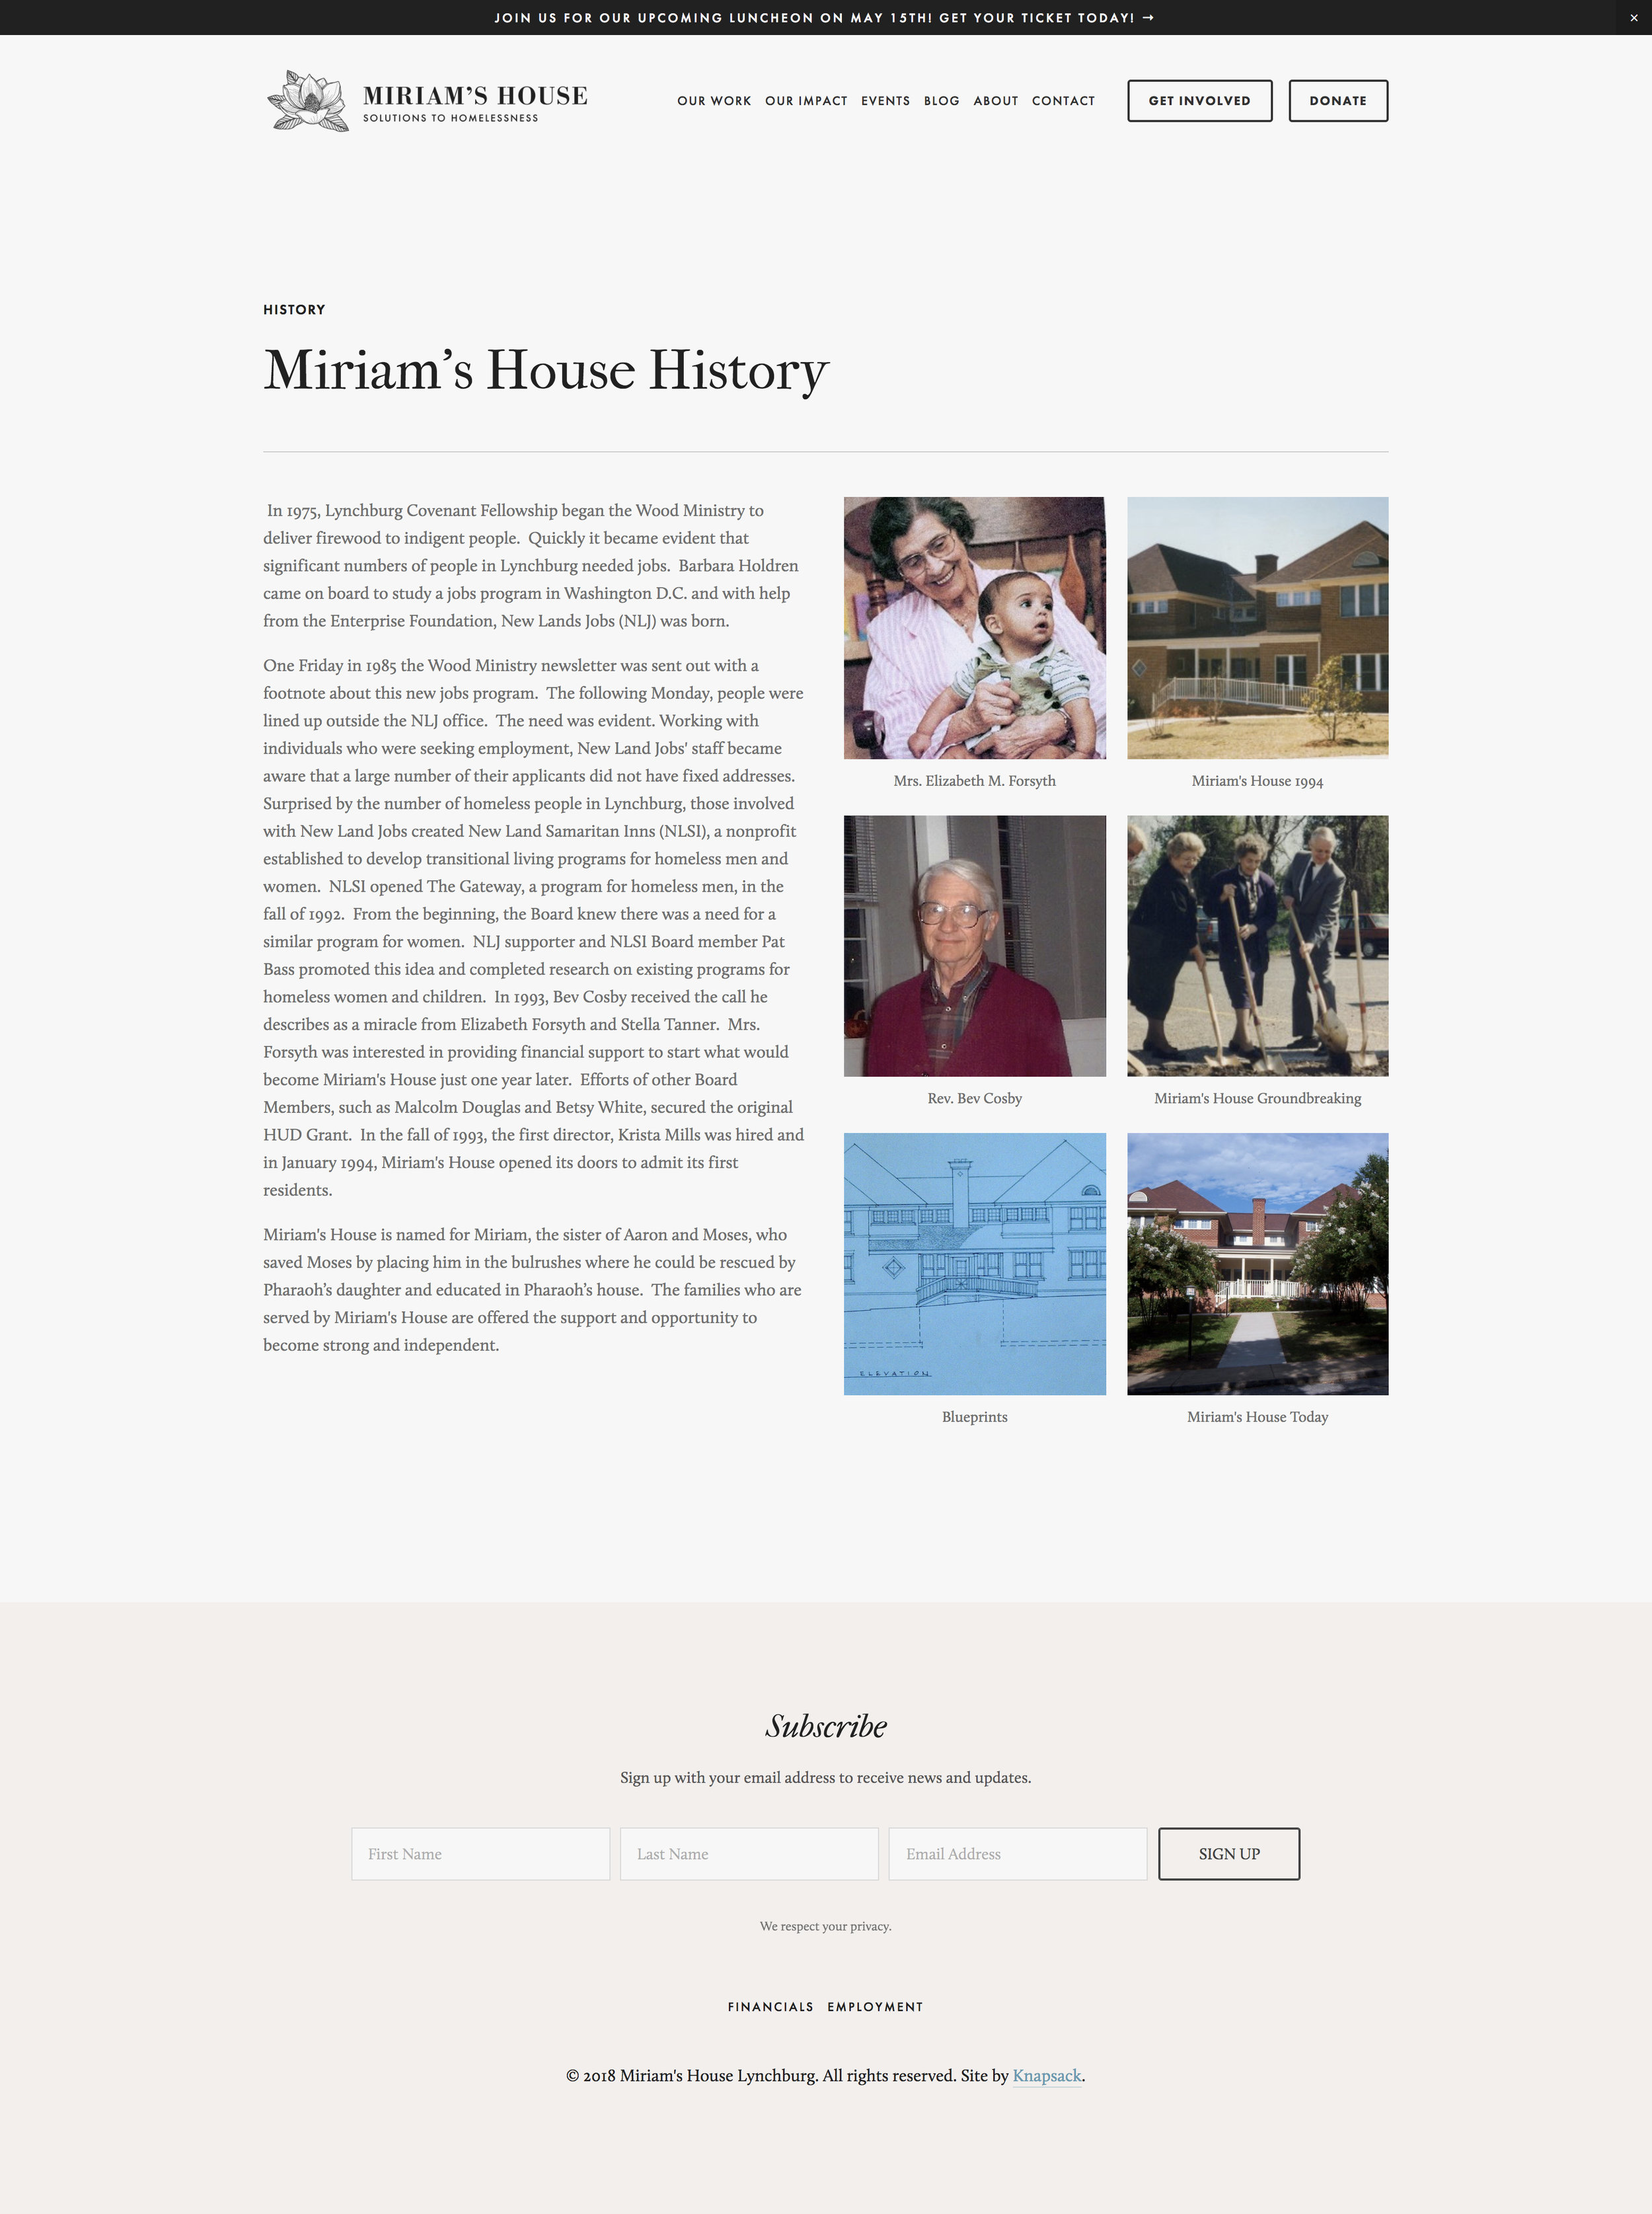 Miriams-House-History-Air.jpg